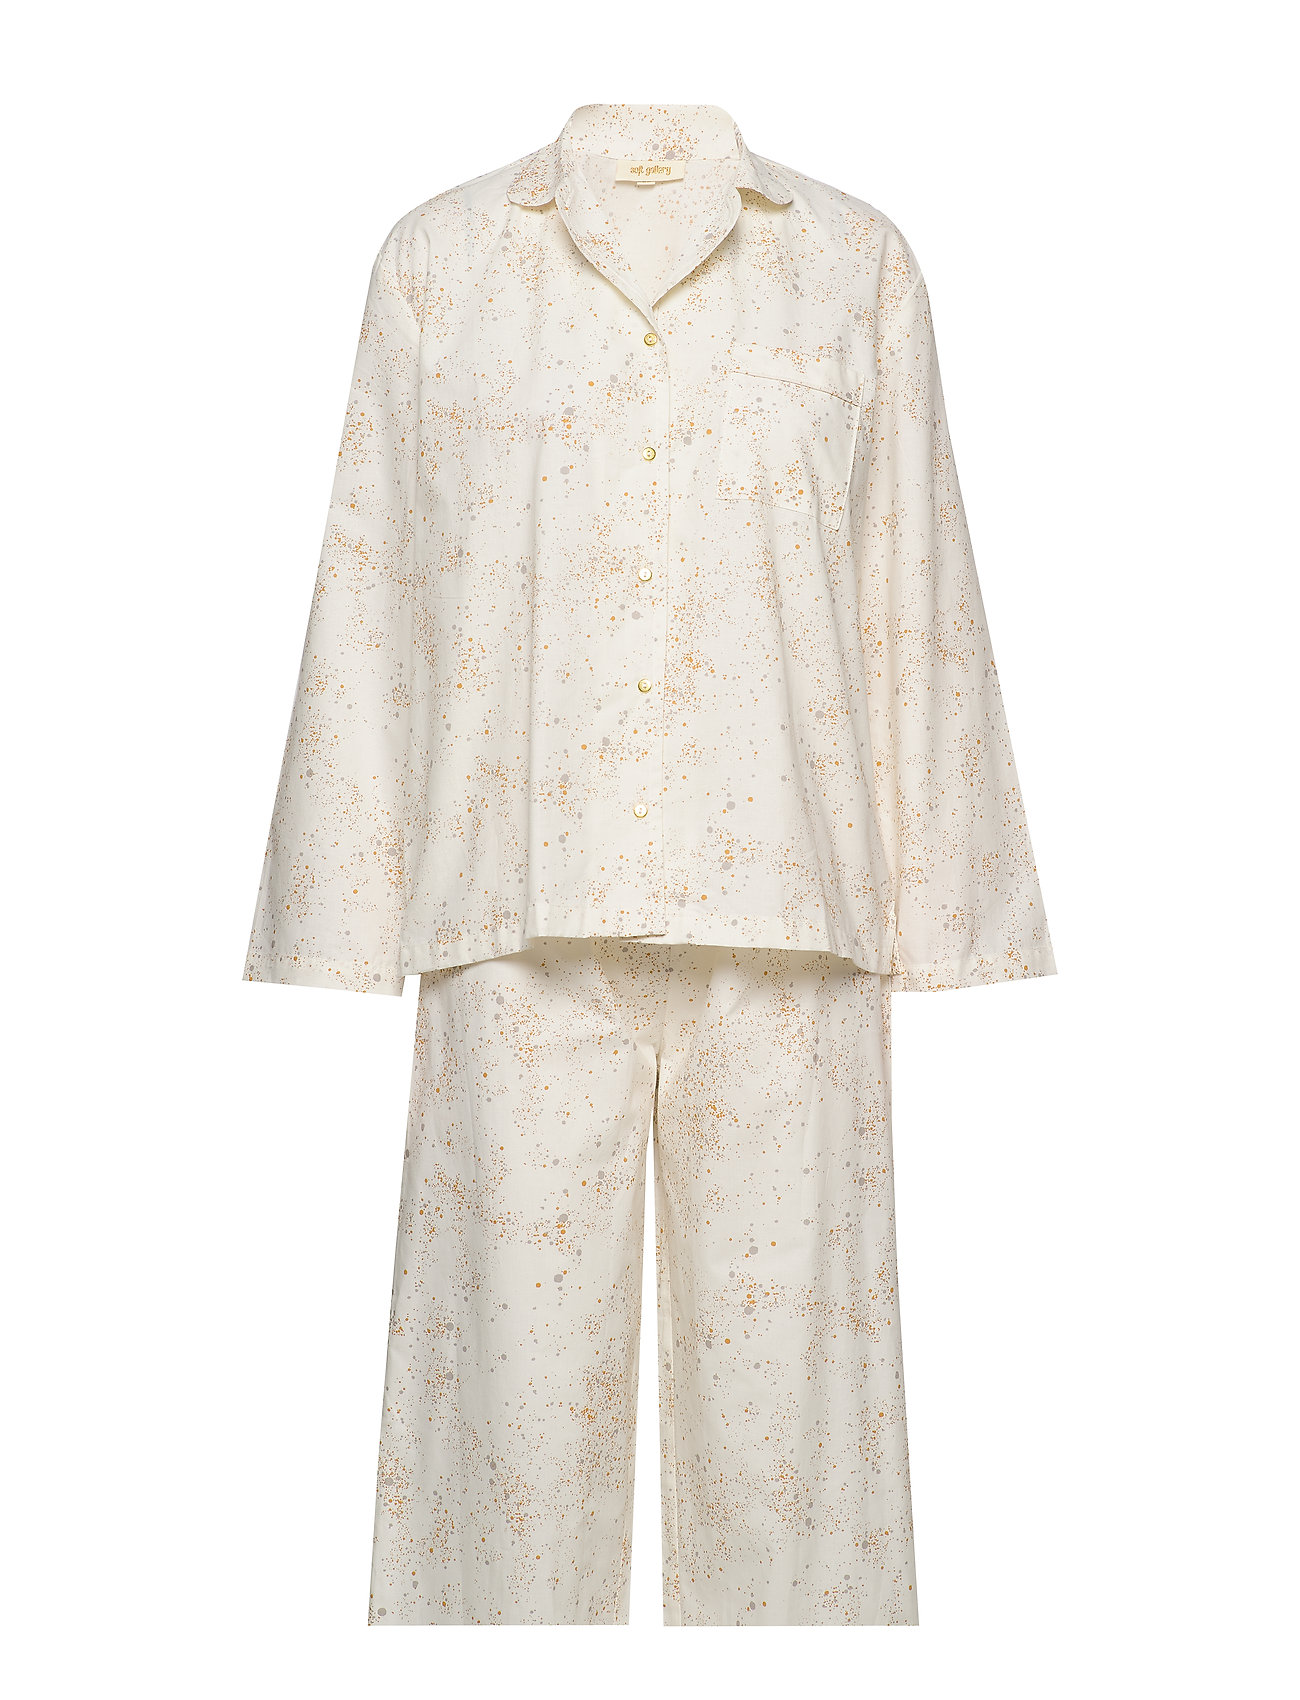 Soft Gallery Pajama Woman - FLUFFY SKY, AOP MINI SPLASH CREAM